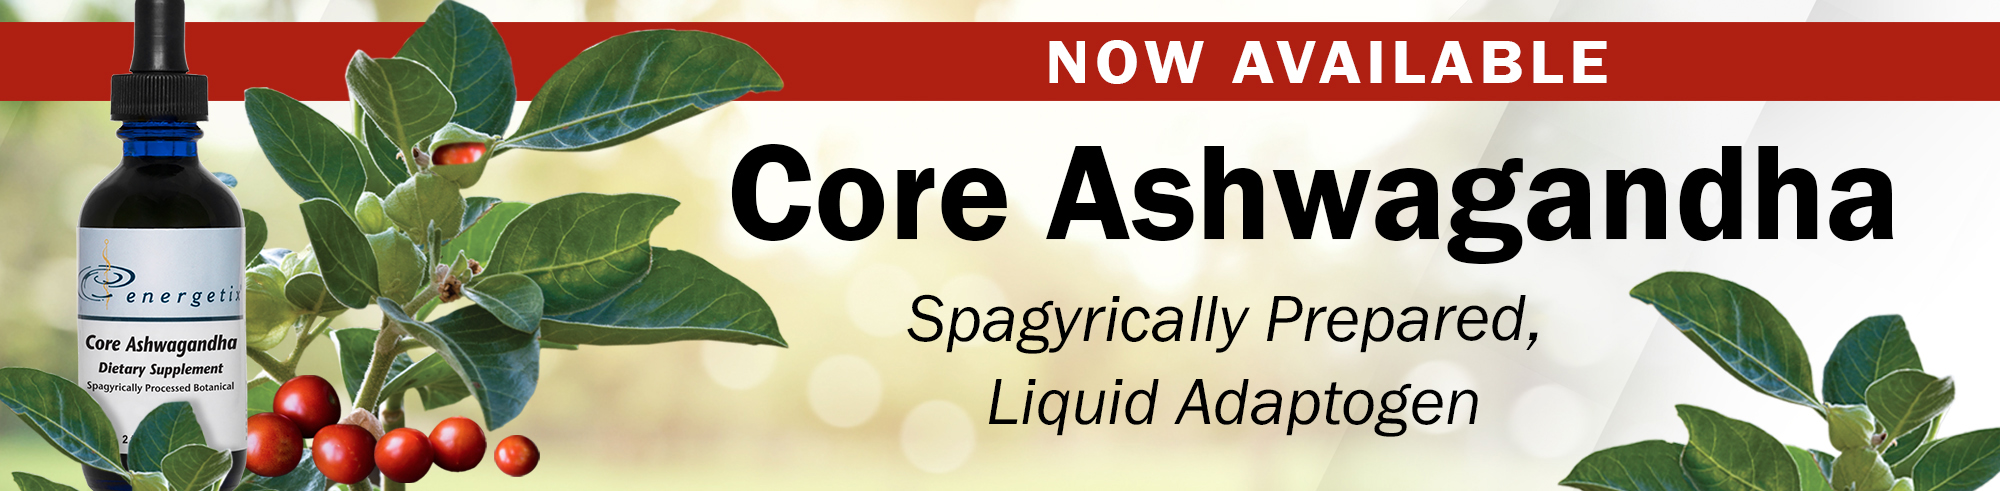 Core Ashwagandha Is Here